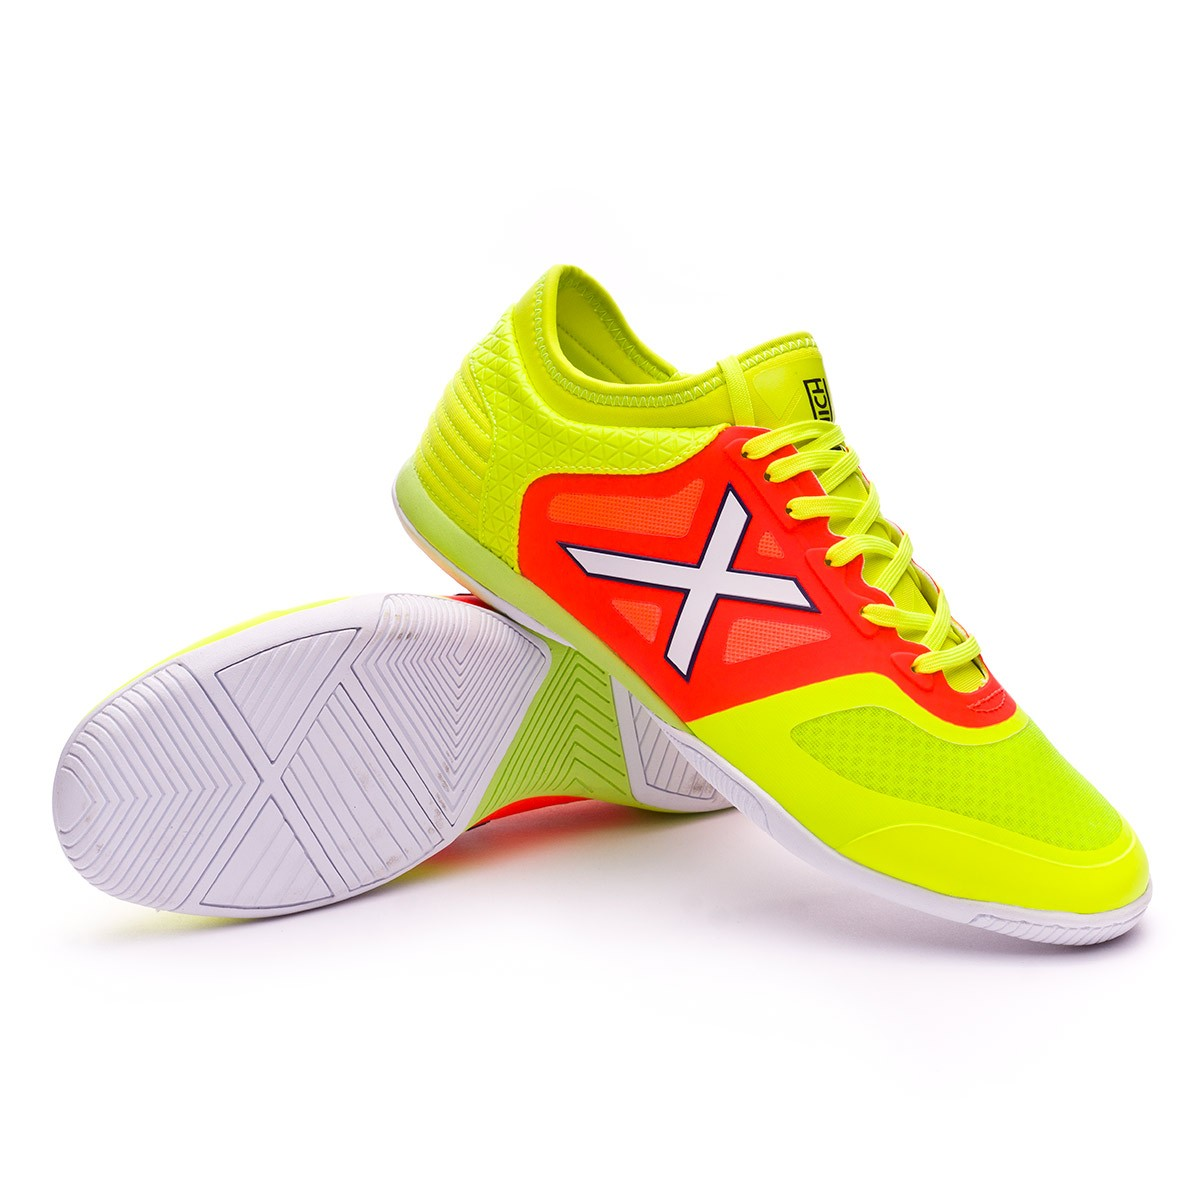 Futsal Boot Munich Tiga Indoor Fluorescent yellow-Fluorescent orange ... 0472d51a9659